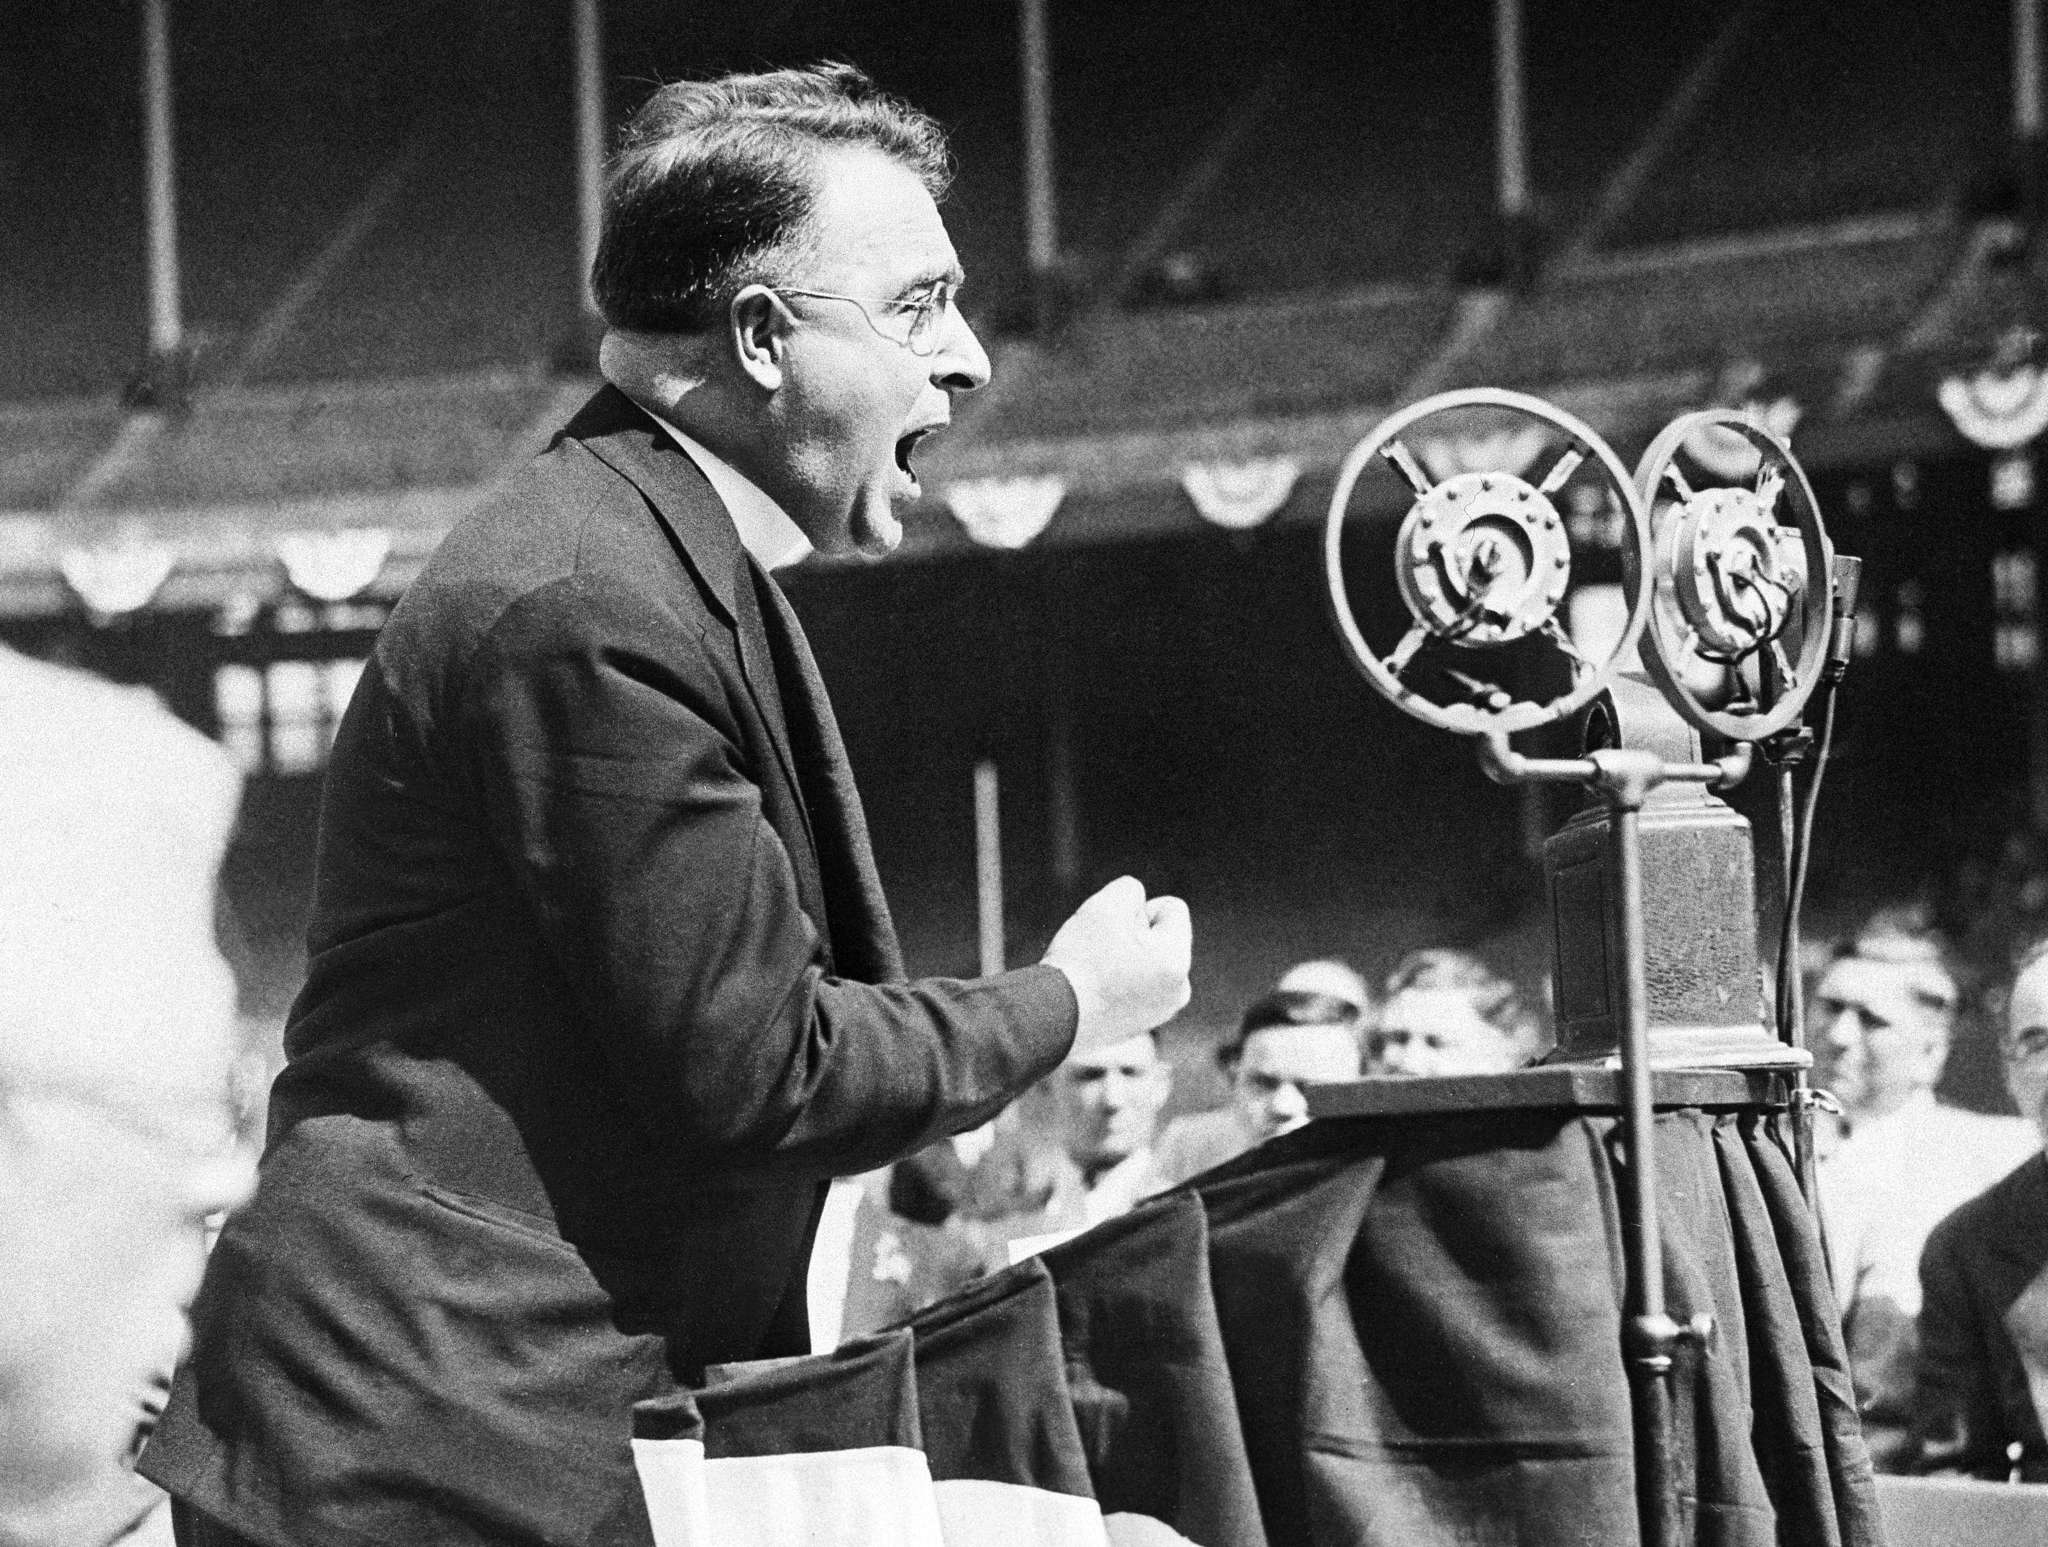 Father Charles Coughlin used the radio as a political tool during the Great Depression to lash out against President Roosevelt for being too cozy with the banks and Federal Reserve. Sound familiar?